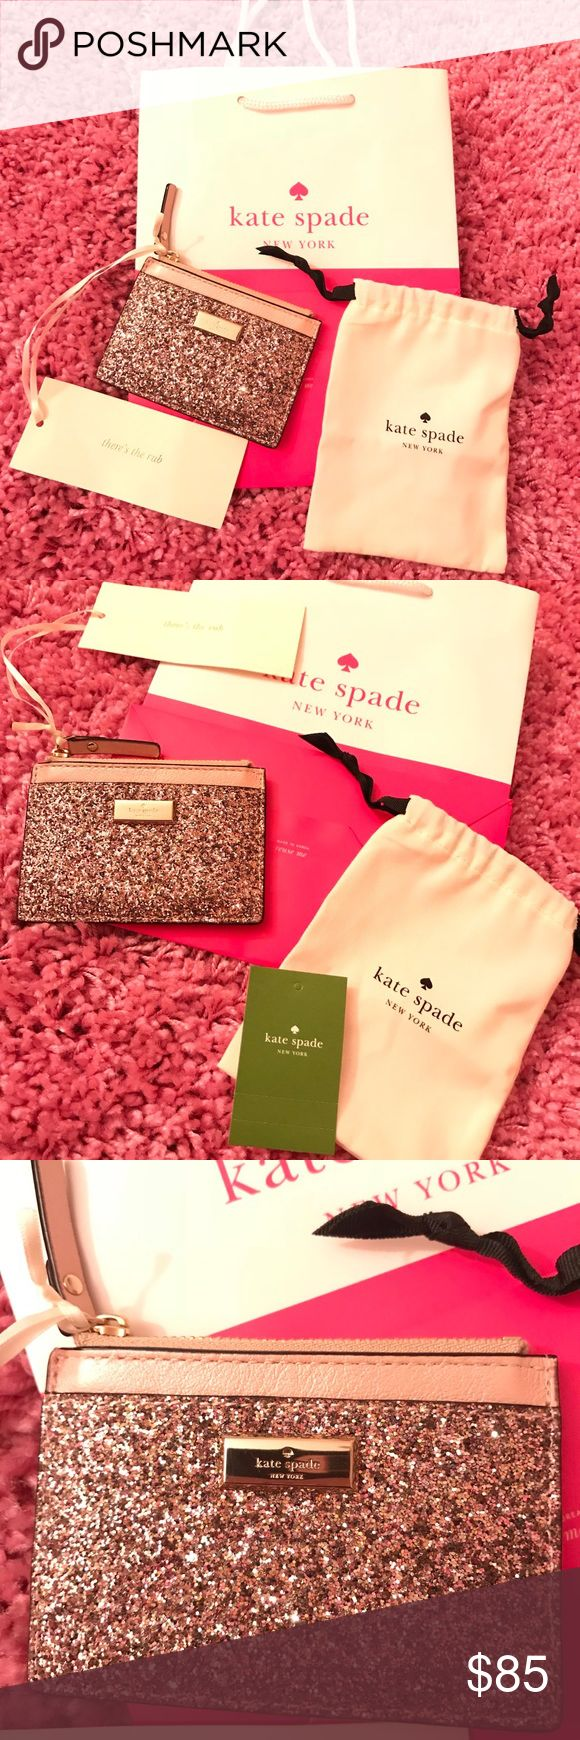 KATE SPADE New York Sunset Lane Adi Wallet Rose Gold  If you like BL!NG! This is Definitely for you! Or... It Makes the Perfect Gift for the Holidays!  Brand New w/ Tag  PET/ SMOKE FREE  100% AUTHENTIC // NO RETURNS  Features:-  ***(Dust Bag & Gift Bag is INCLUDED)***  •Zip Closure •Glitter body with metallic trim •Capital kate jacquard lining •14-karat gold plated hardware •Small coin pouch •2 card slots in back; 1 card slot in front; 1 zip pocket on top •Kate Spade New York signature on…